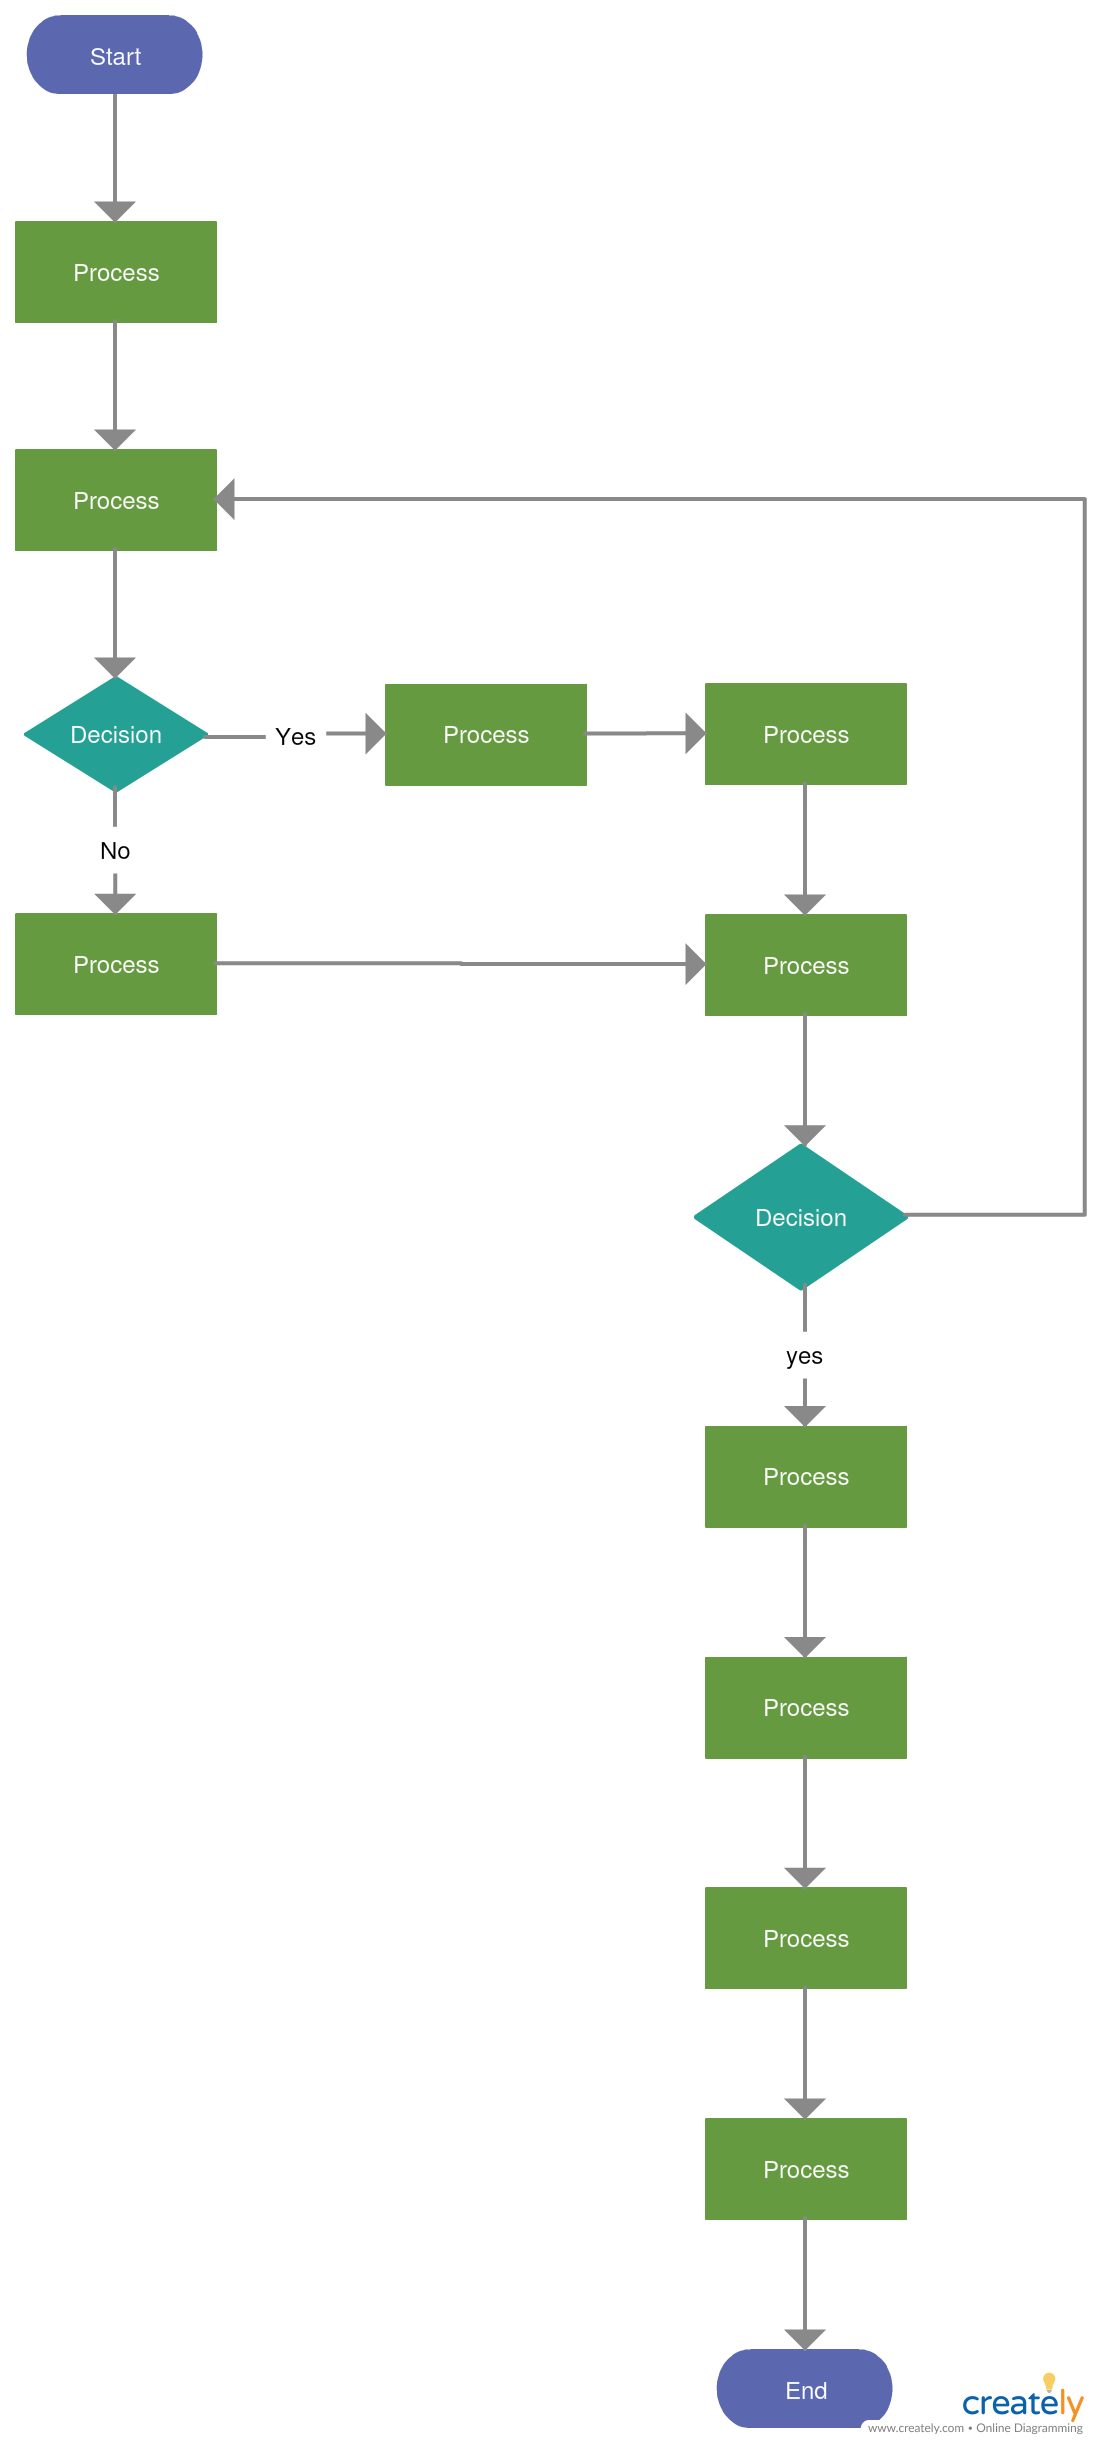 medium resolution of vertical flowchart template editable online shopping flowchart to visualize your online shopping process flow and make improvements to them